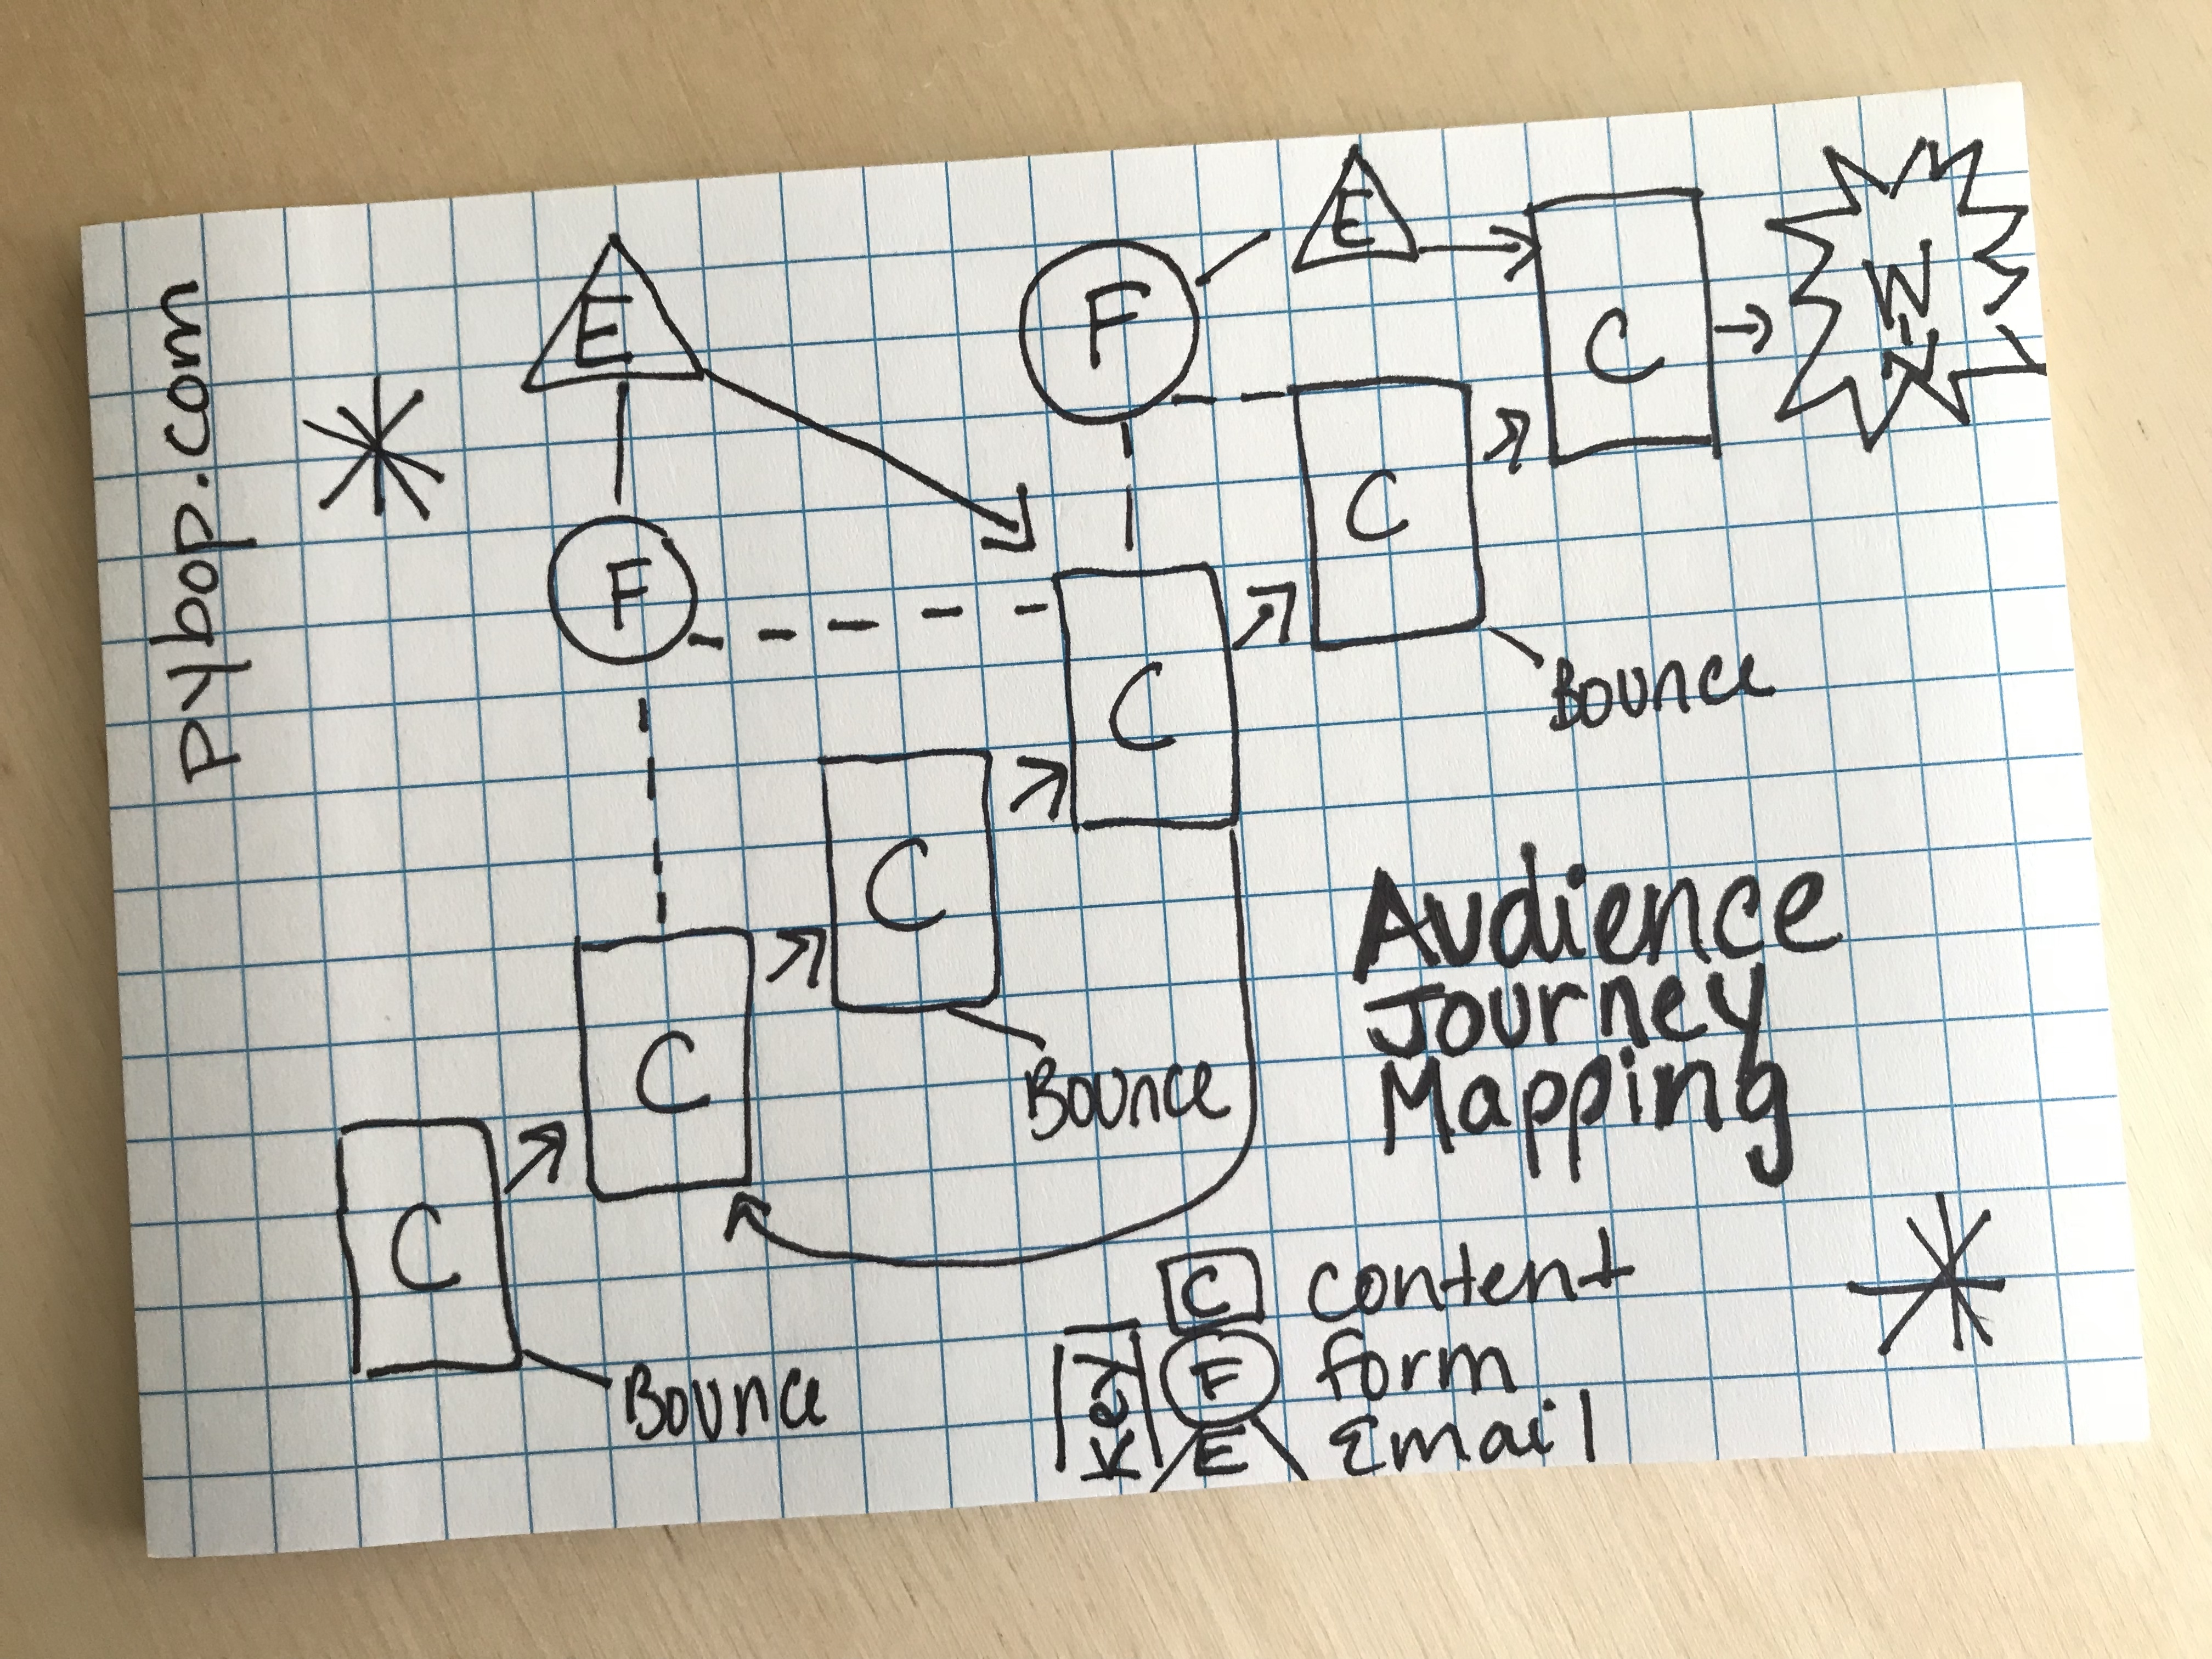 What does an audience journey map entail?